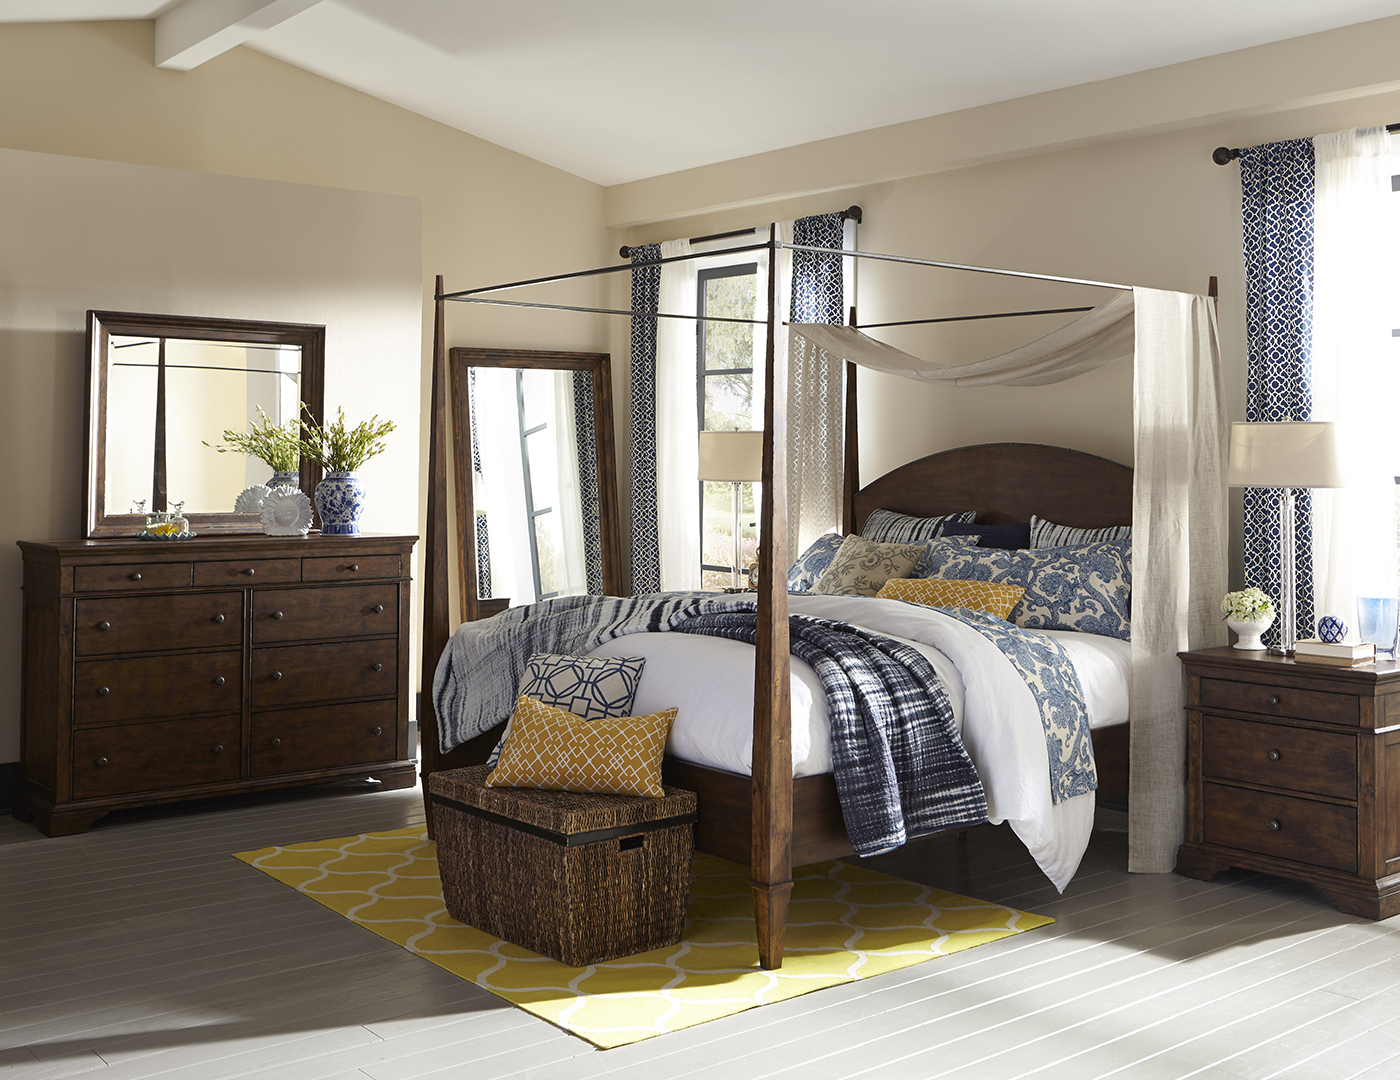 Poster Canopy Bed steinhafels - trisha yearwood king poster canopy bed